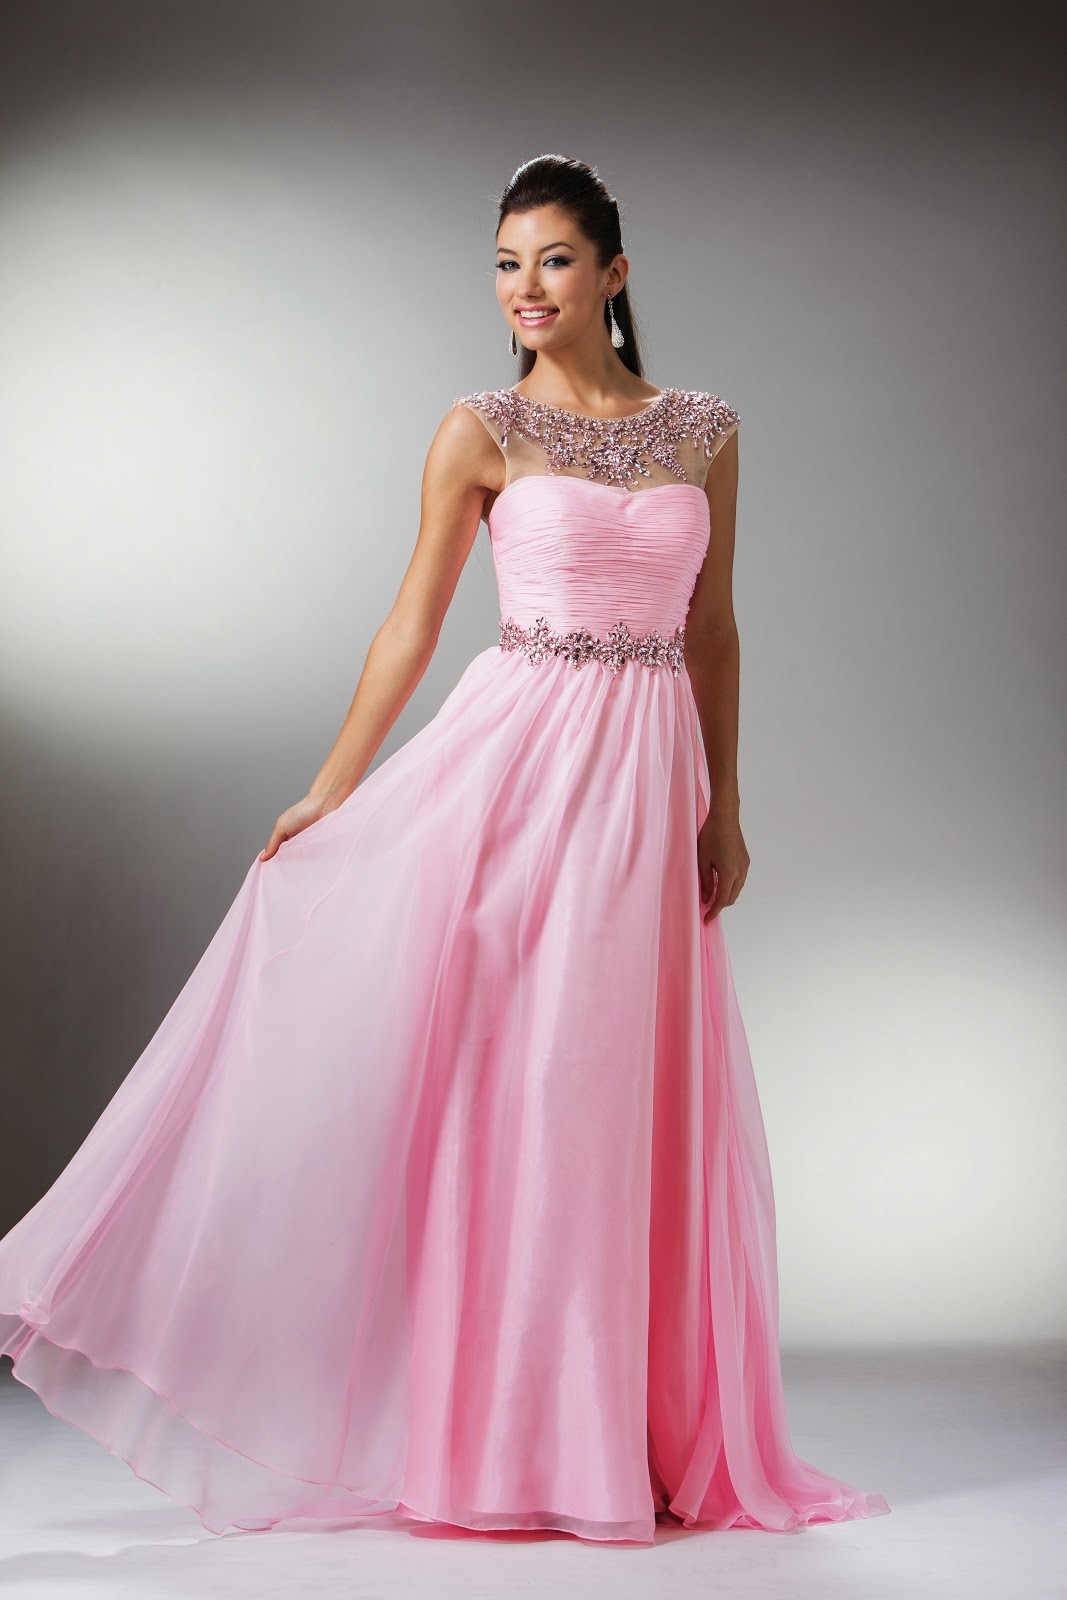 Latest Prom Dresses 2016 - Holiday Dresses